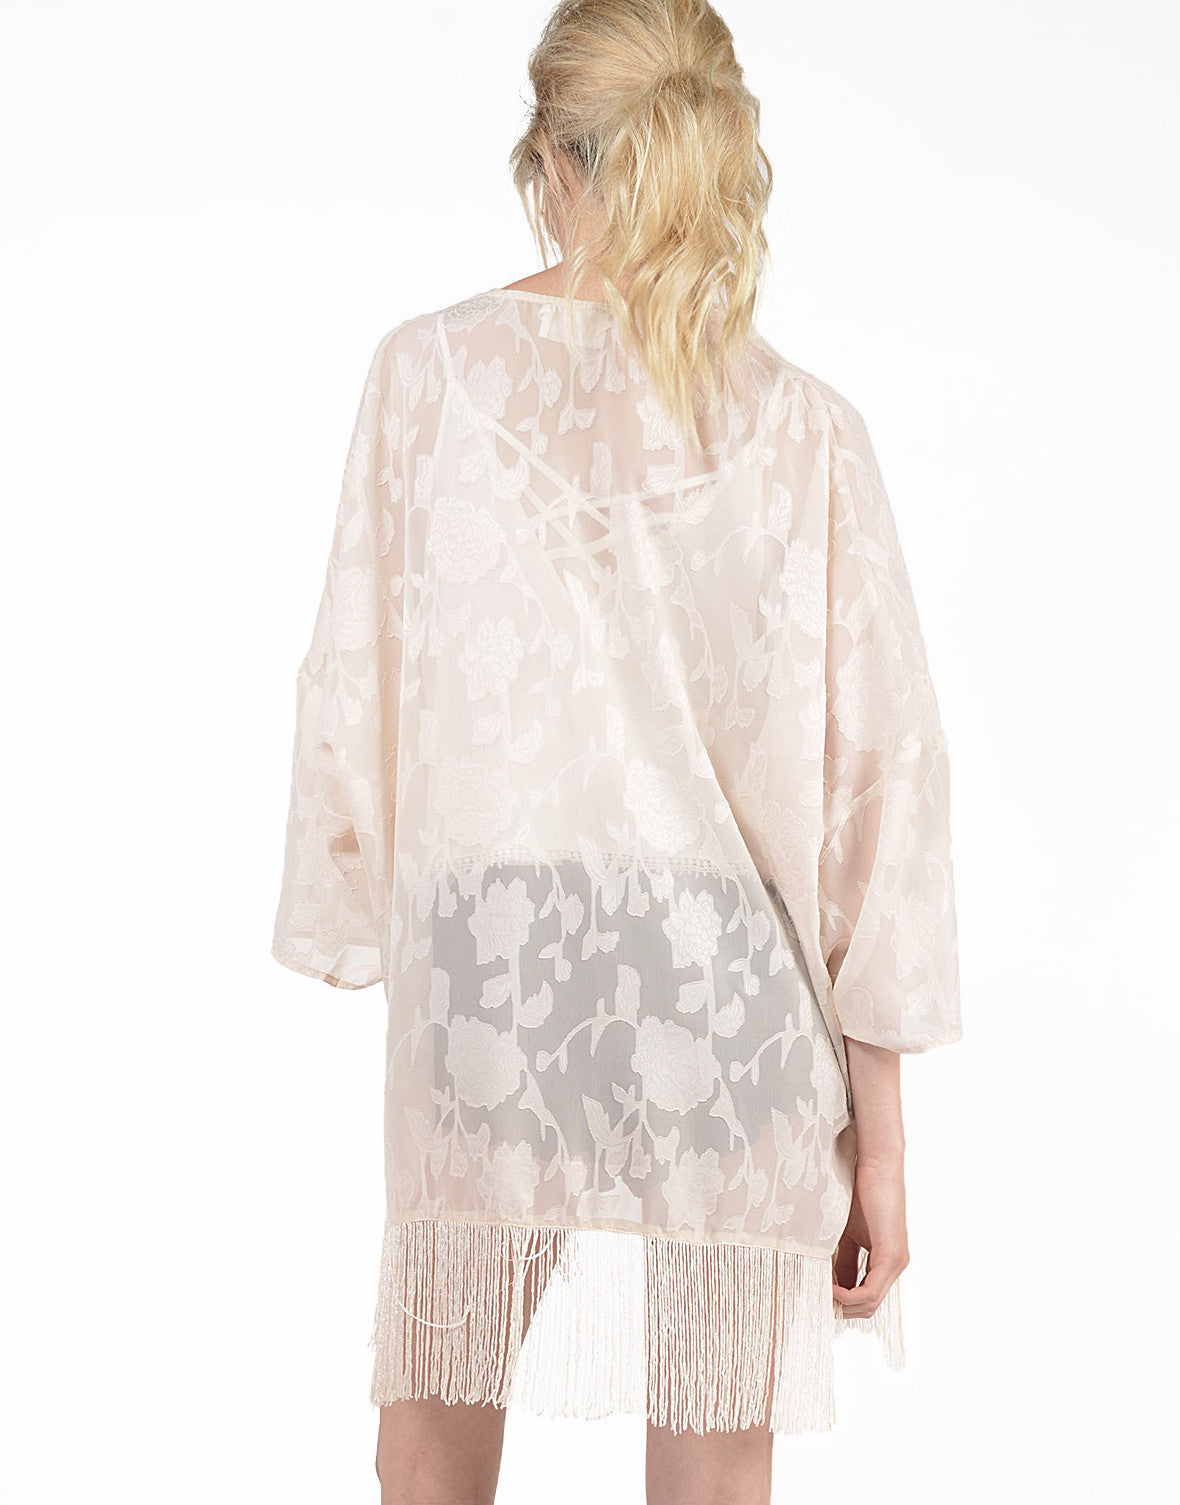 Back View of Burnout Floral Kimono